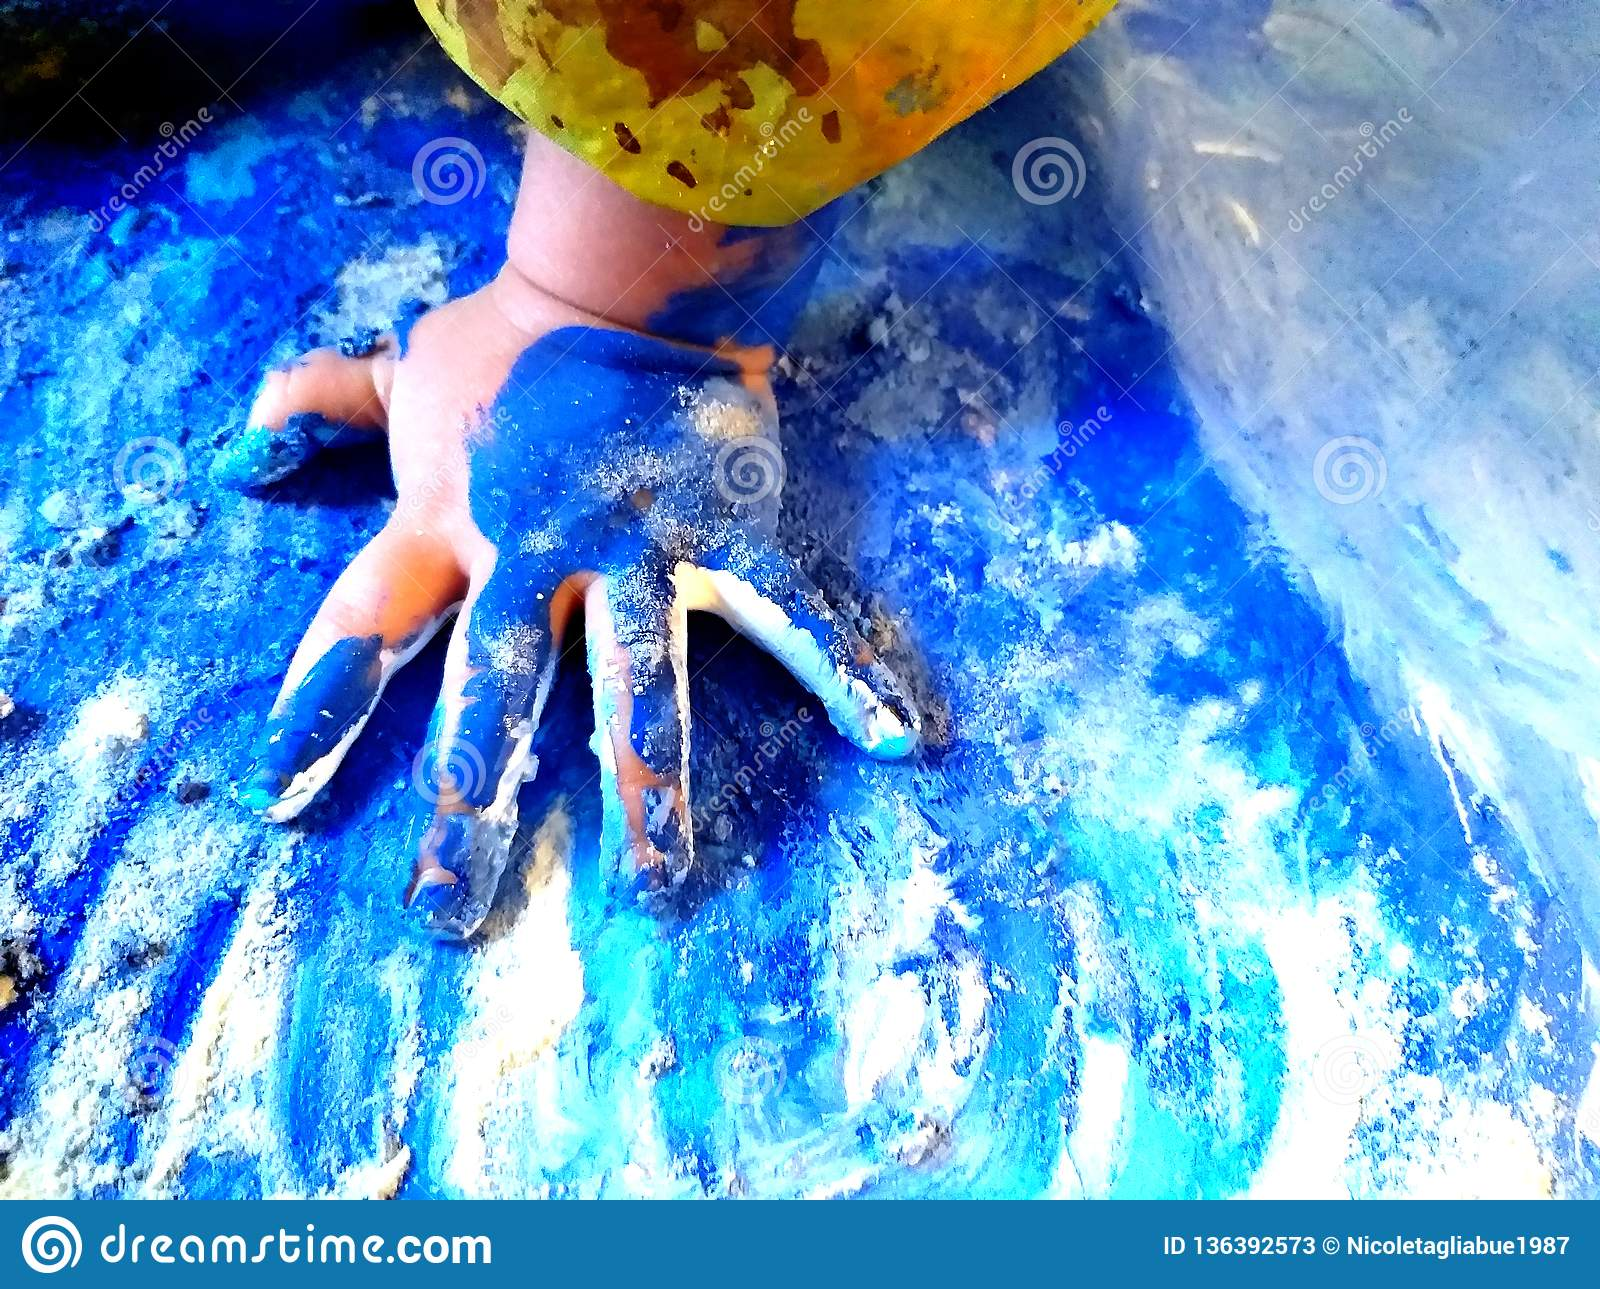 Closeup of children hands painting during a school activity - learning by doing, education and art, art therapy concept